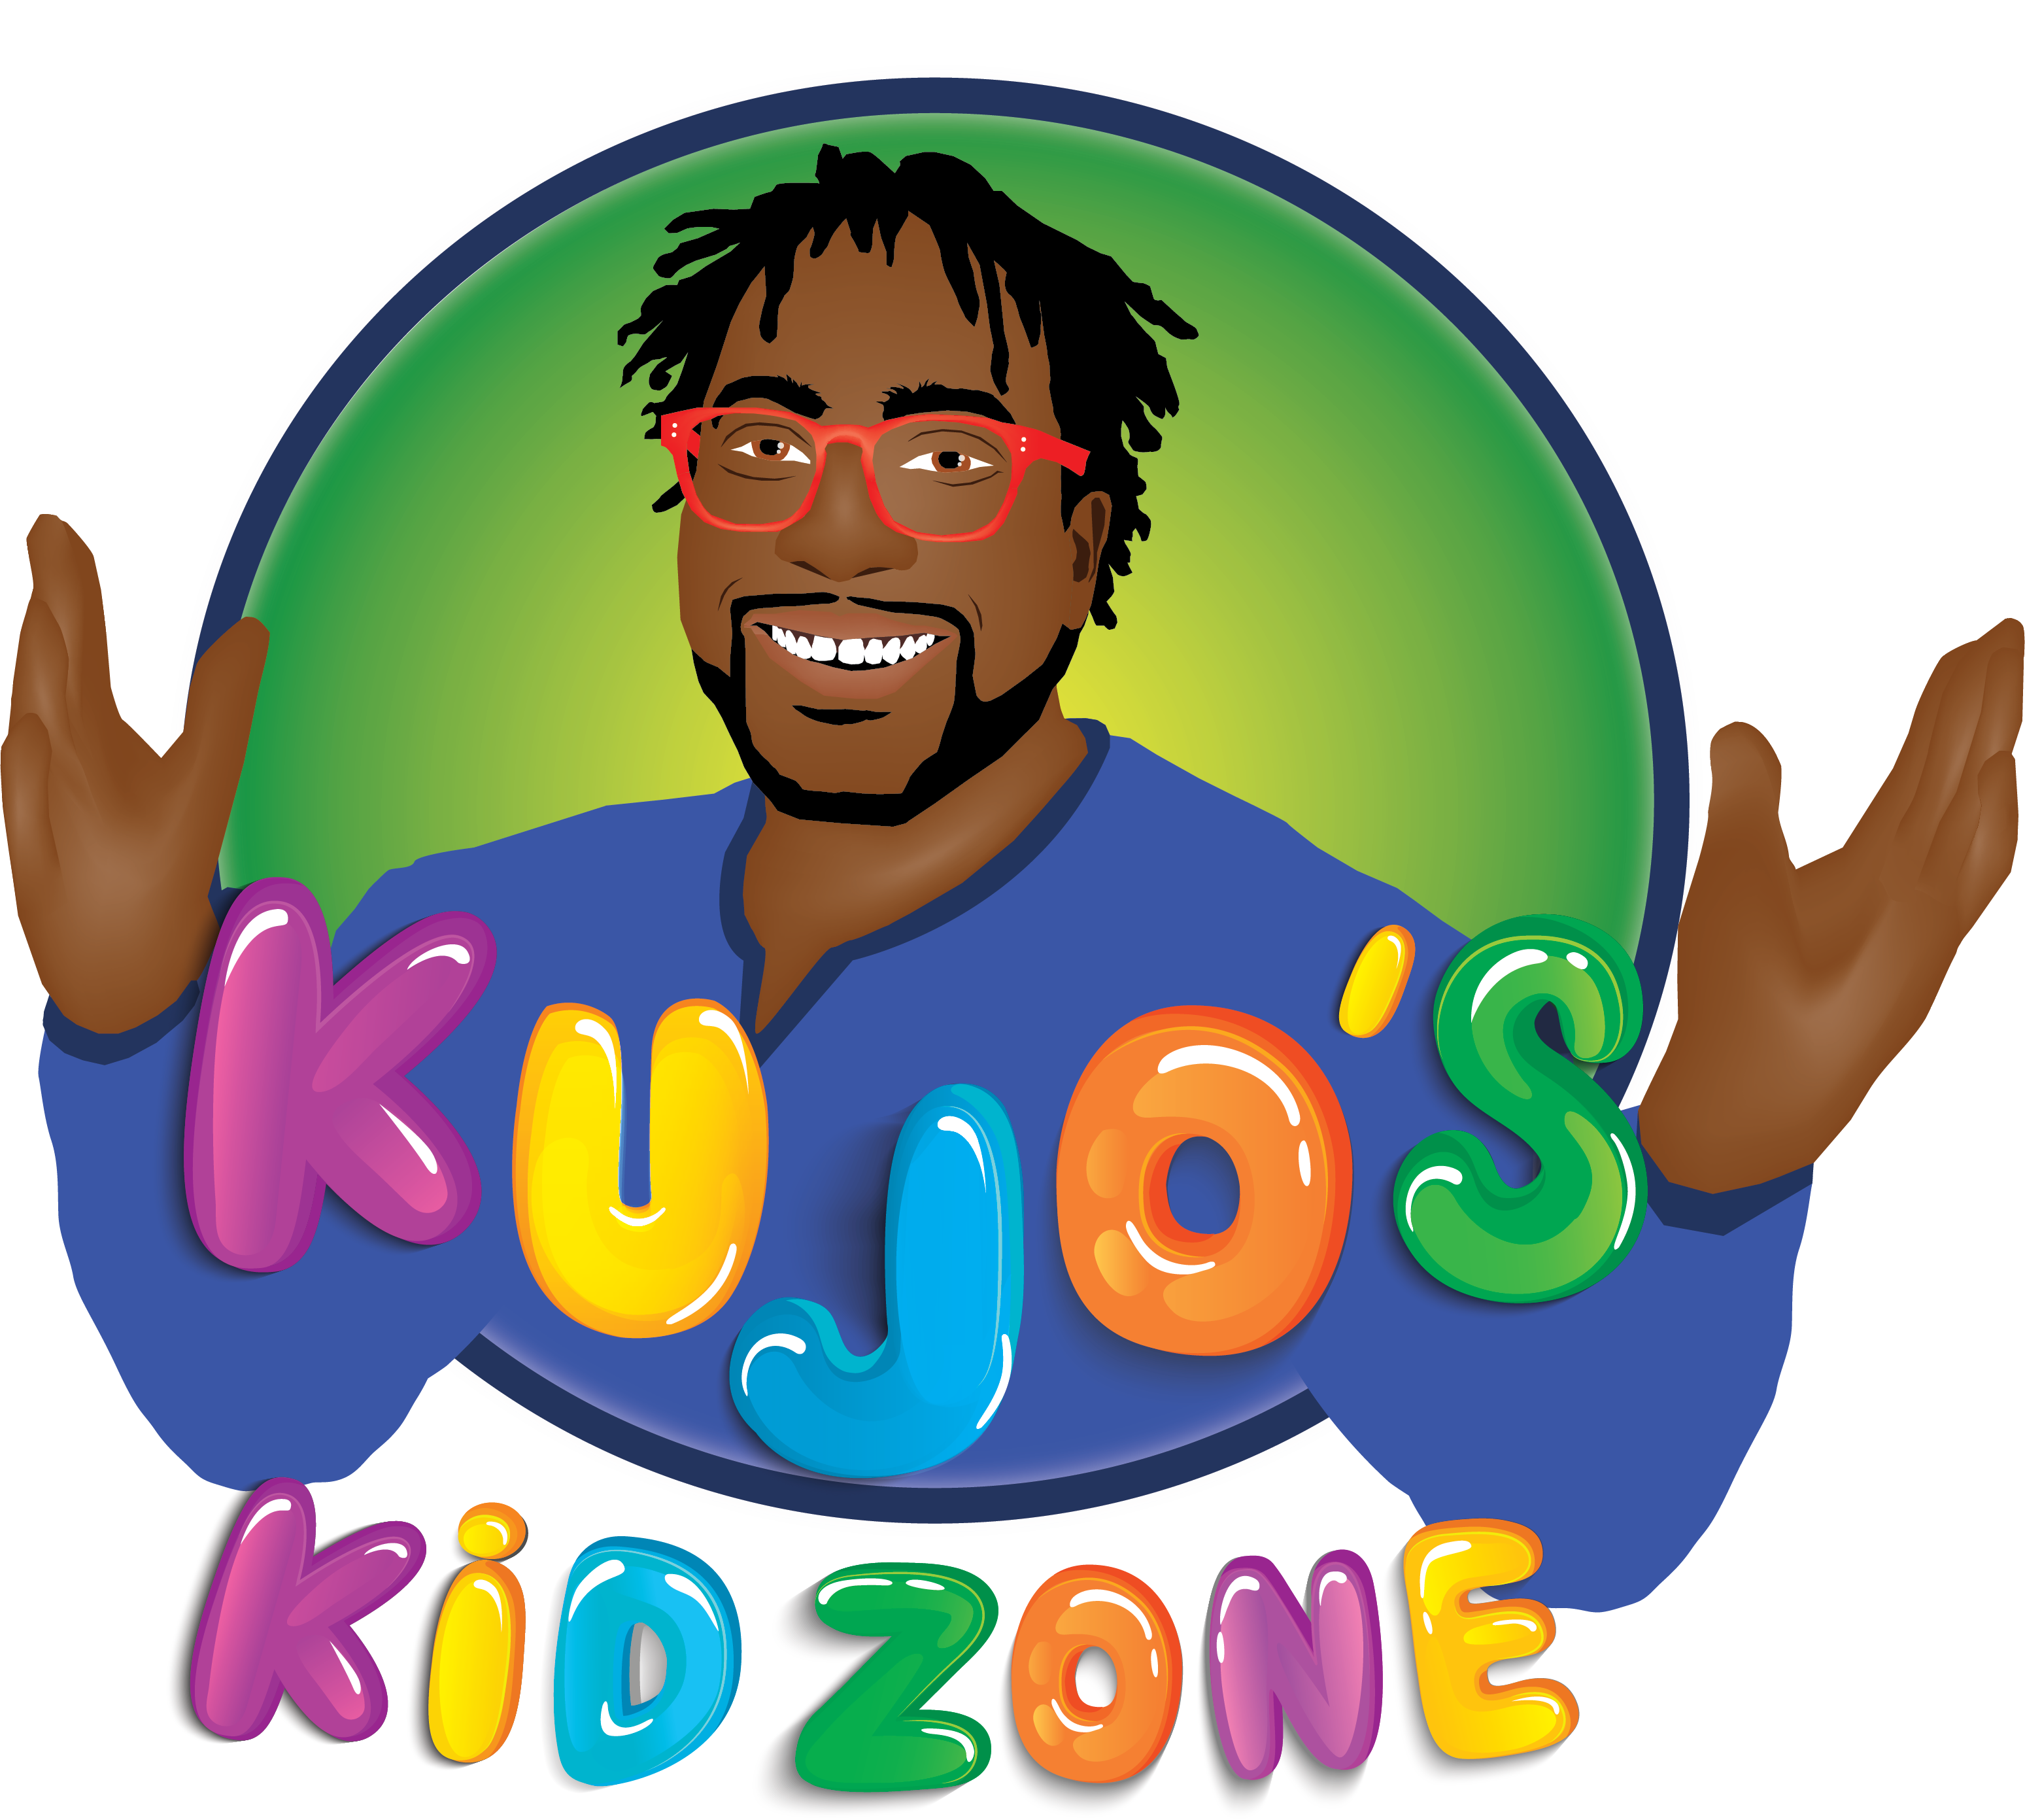 Kujo's Kid Zone